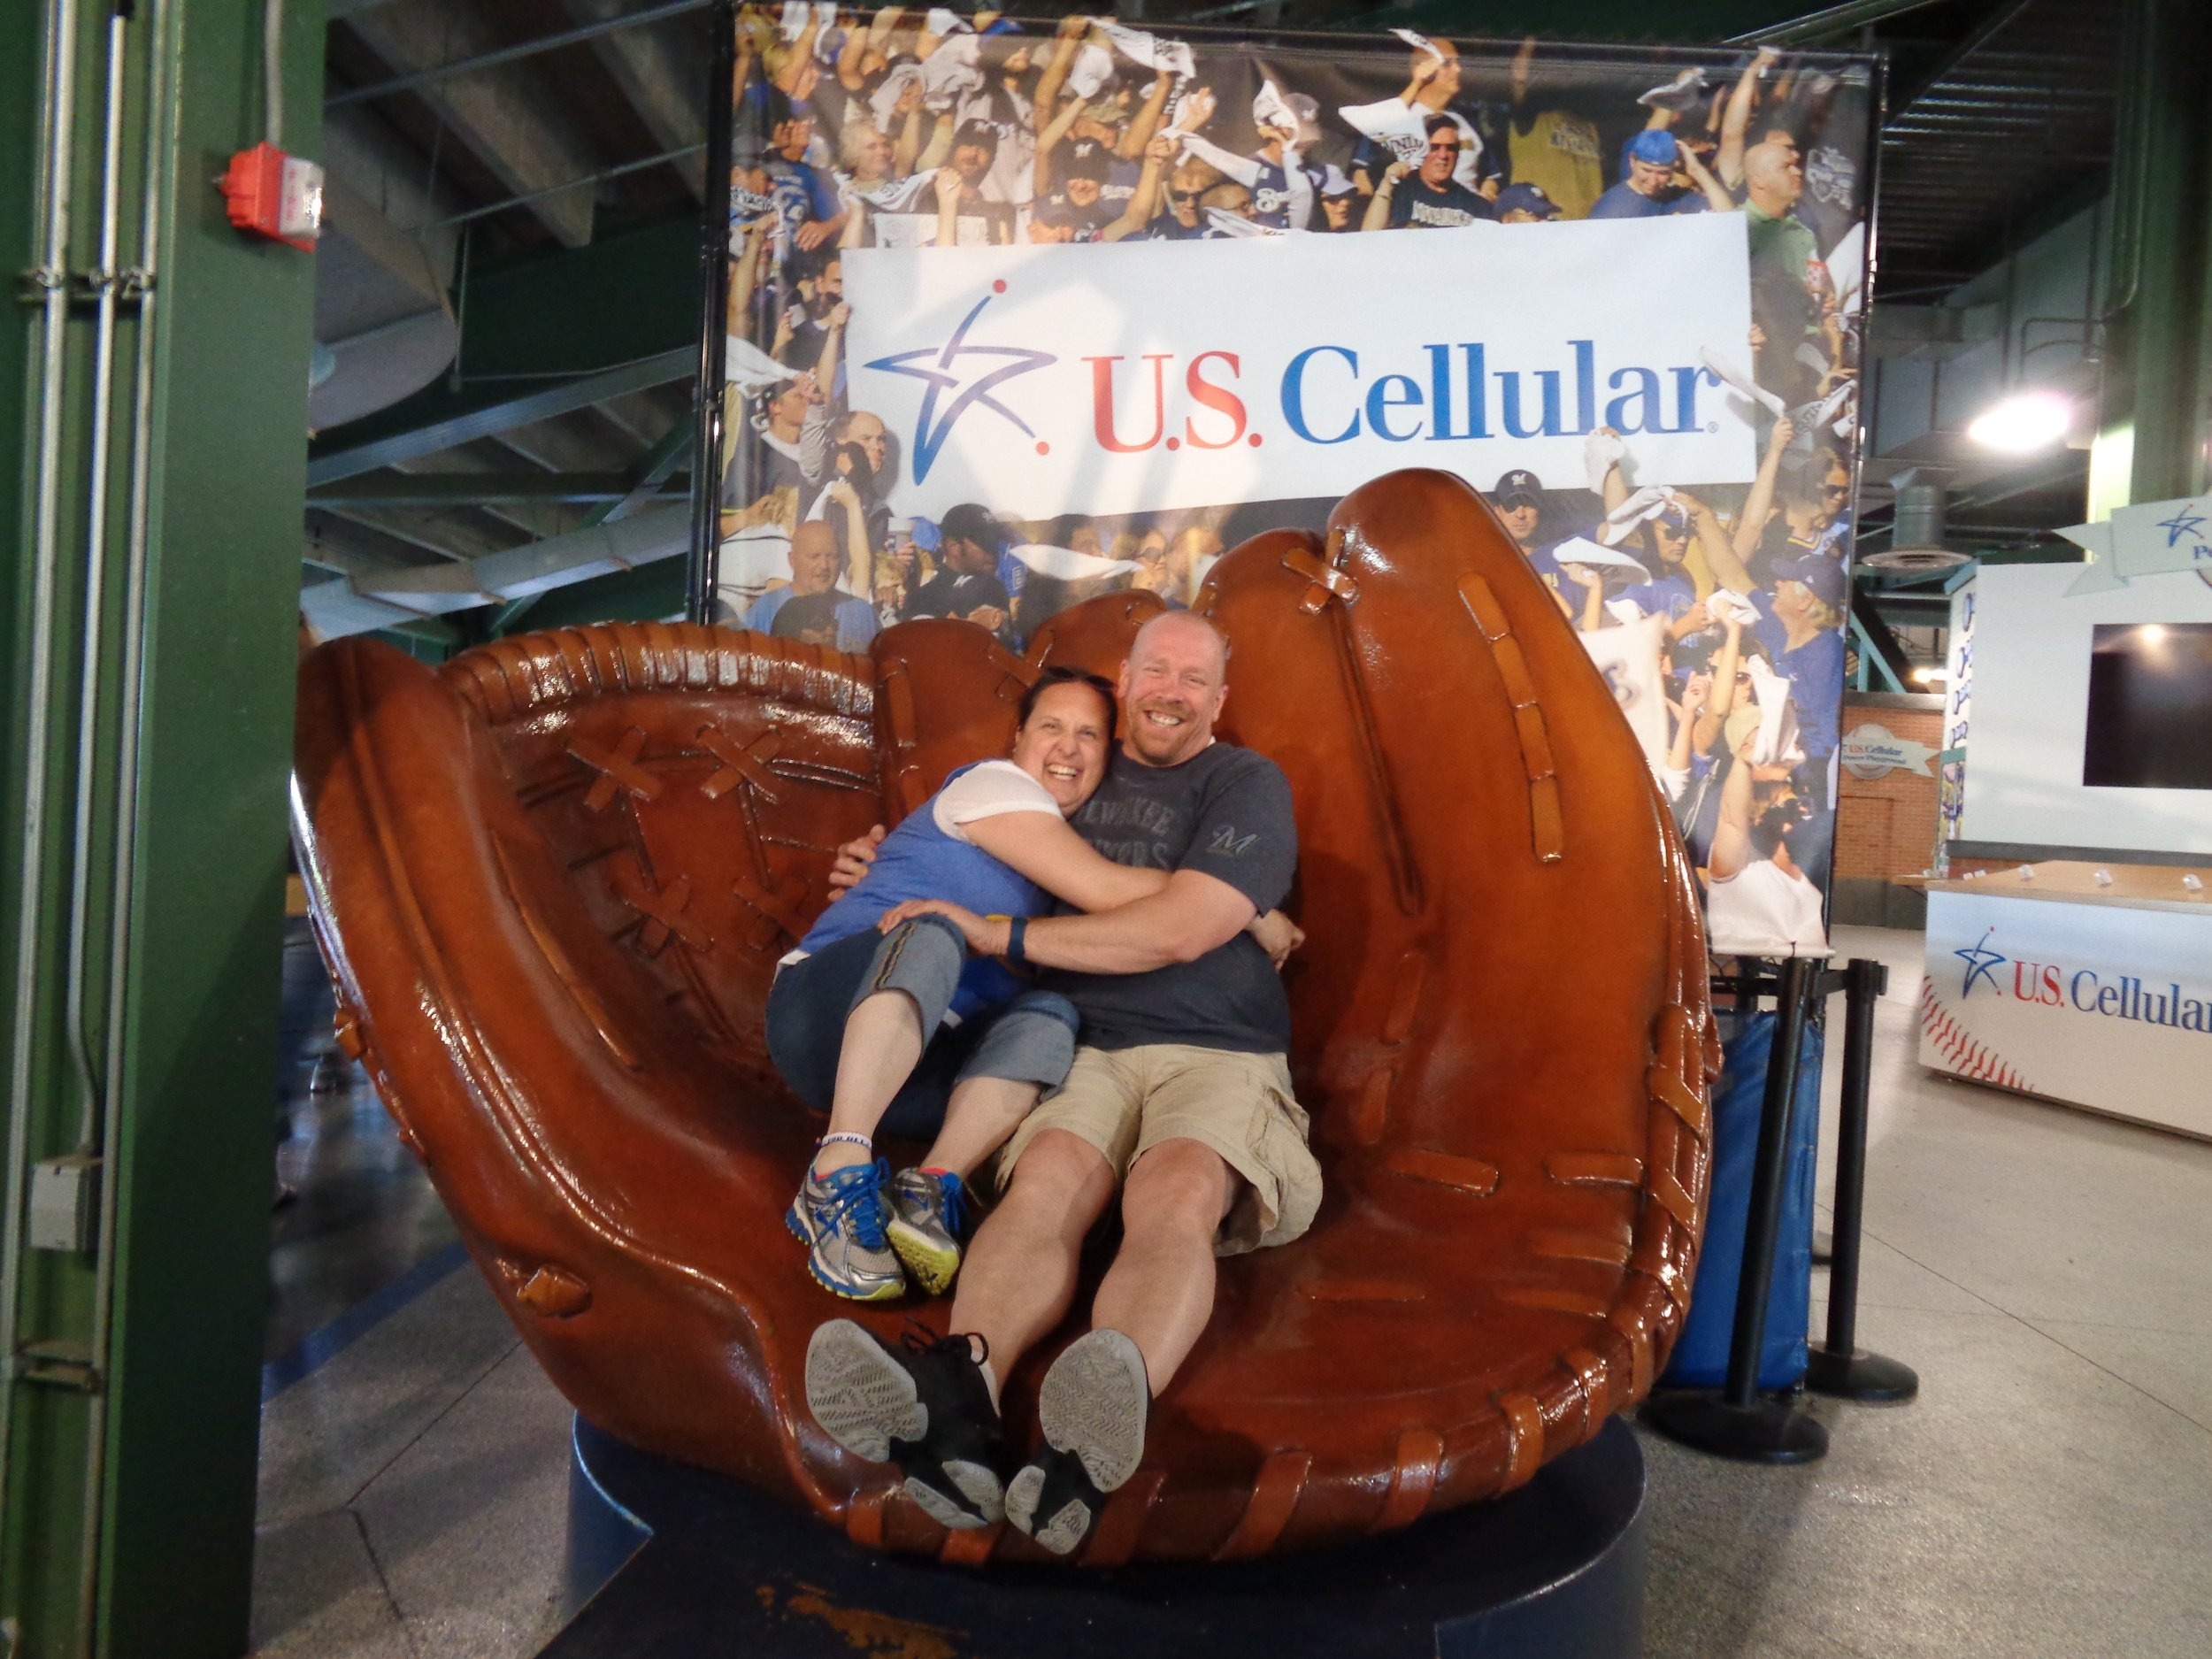 Chillin' in a giant baseball glove at the Brewers game